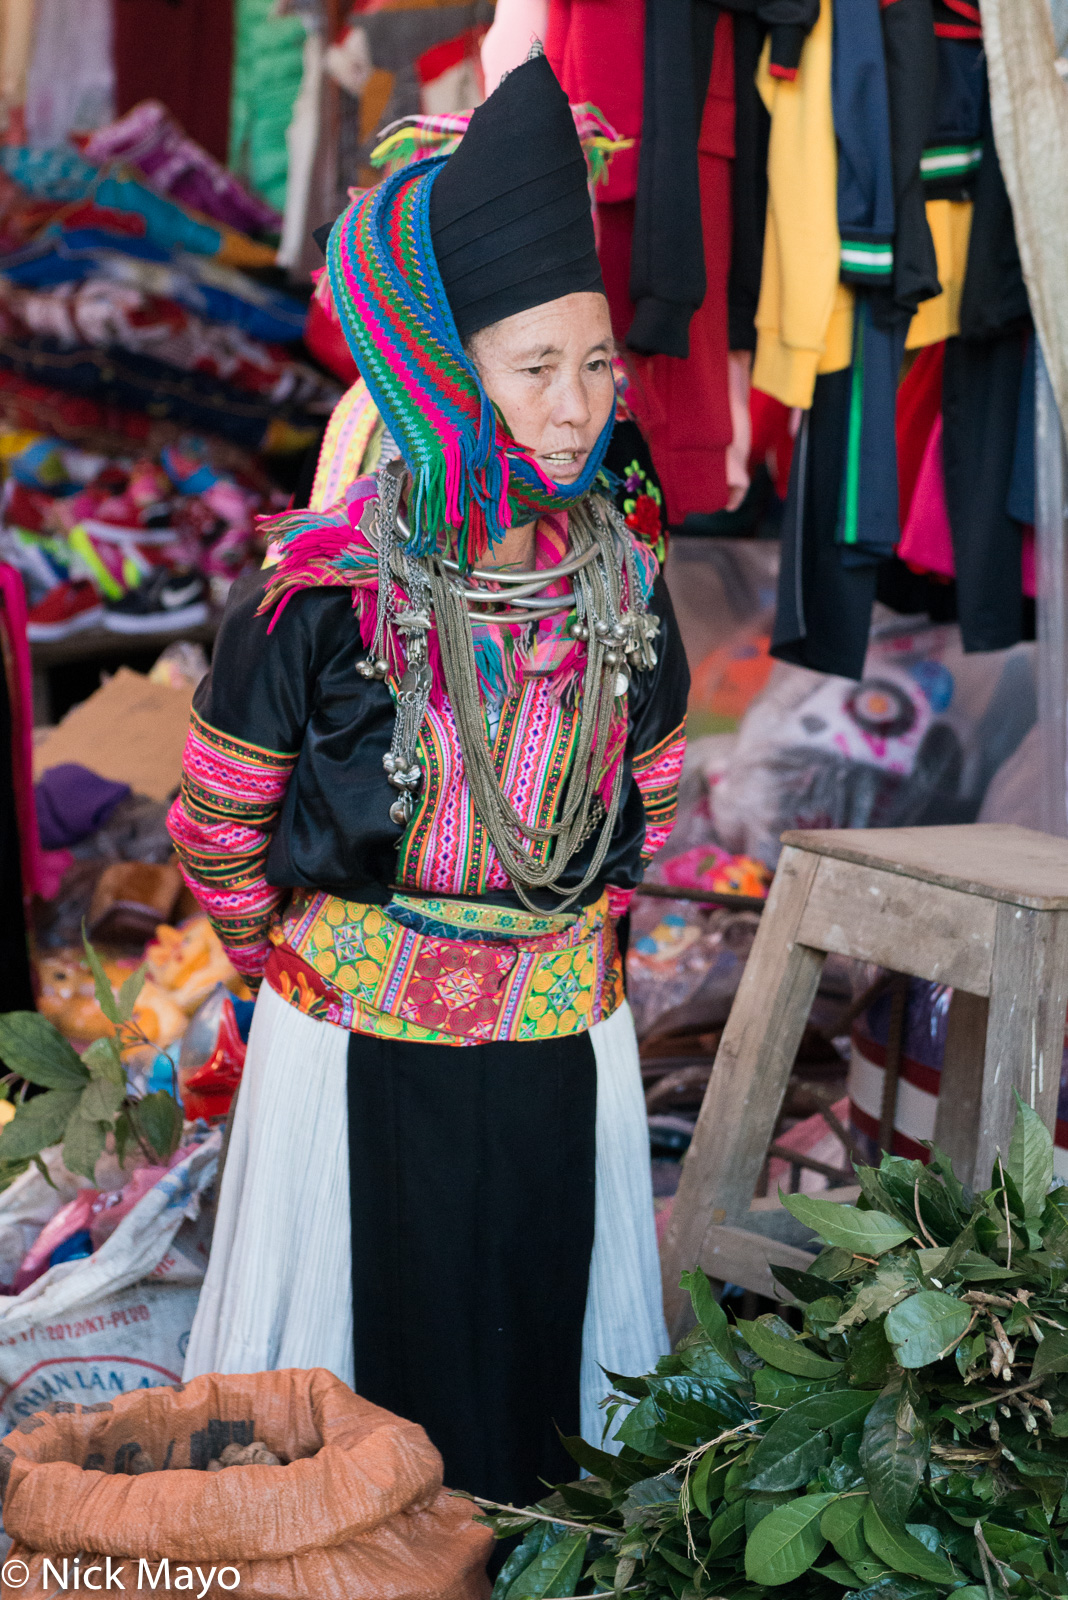 Lai Chau, Market, Miao, Necklace, Selling, Turban, Vietnam, photo